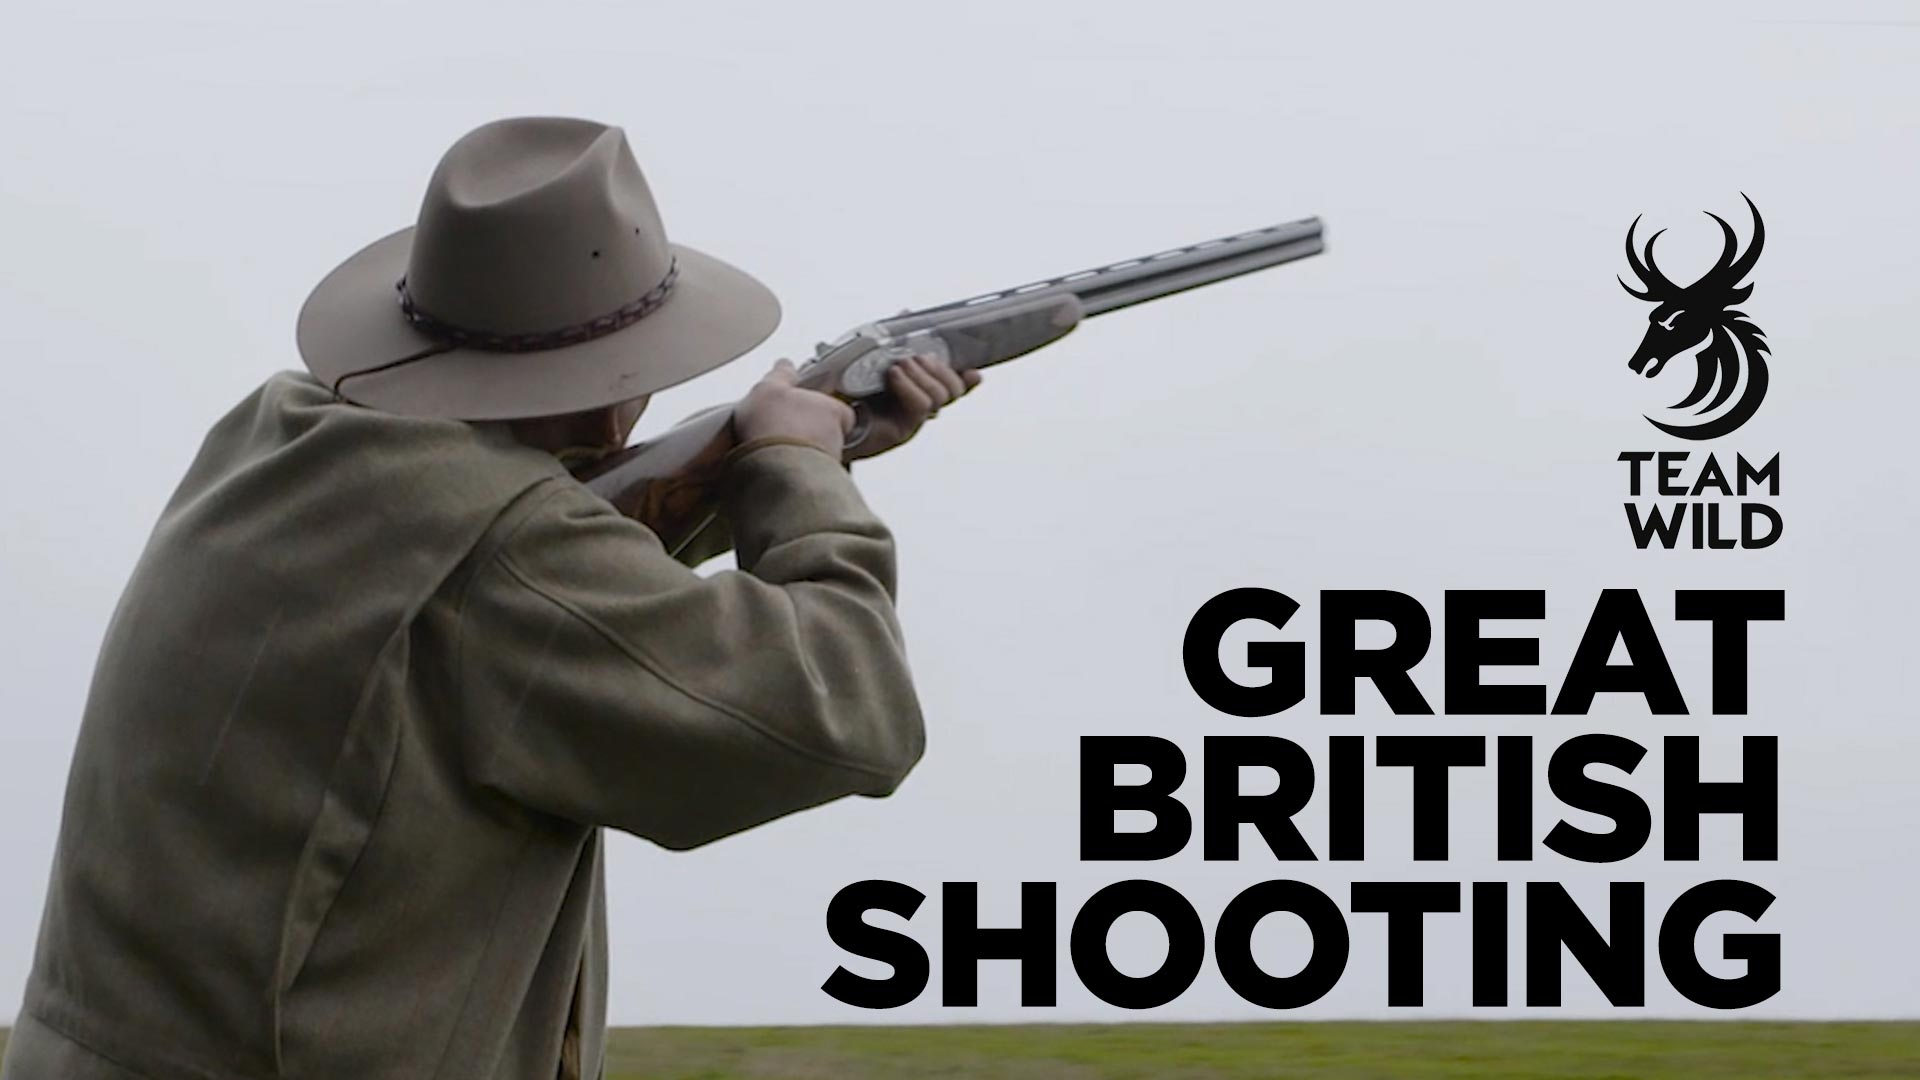 Great British Shooting